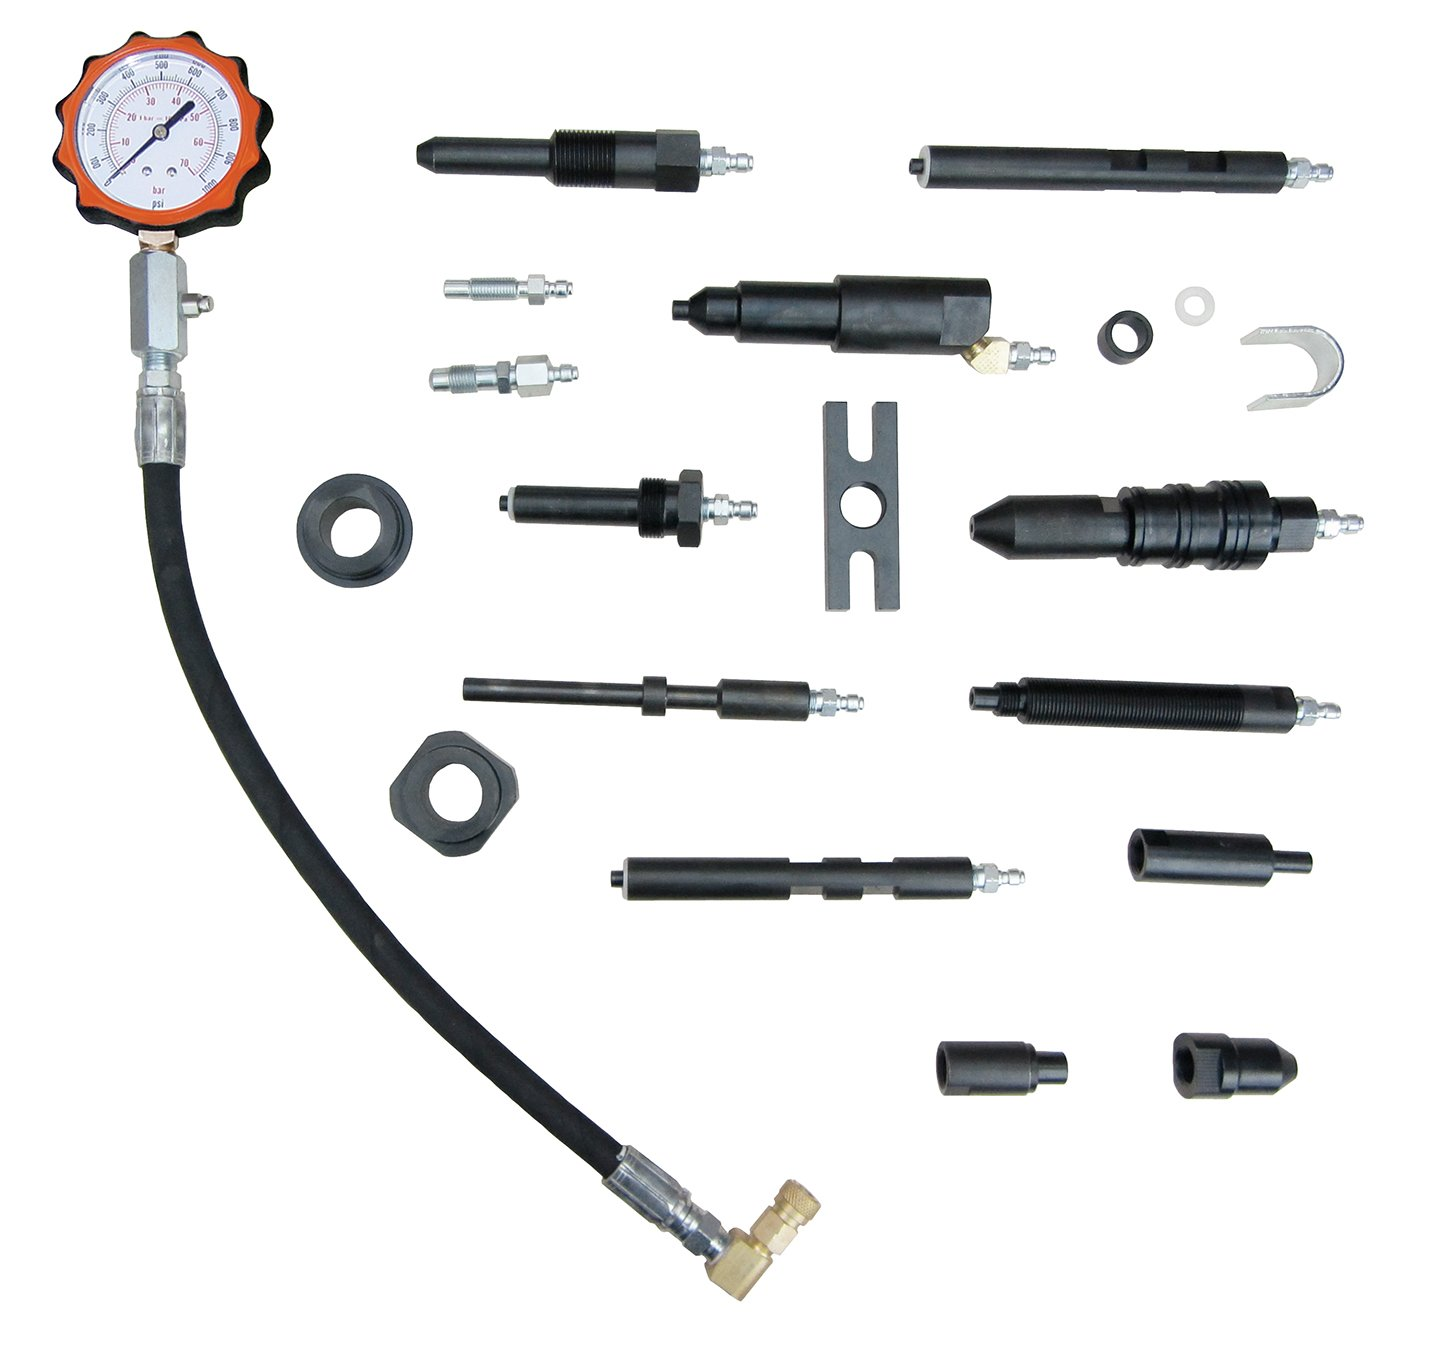 Star Products TU-15-70 Diesel Compression Test Set With Tester And Adapters